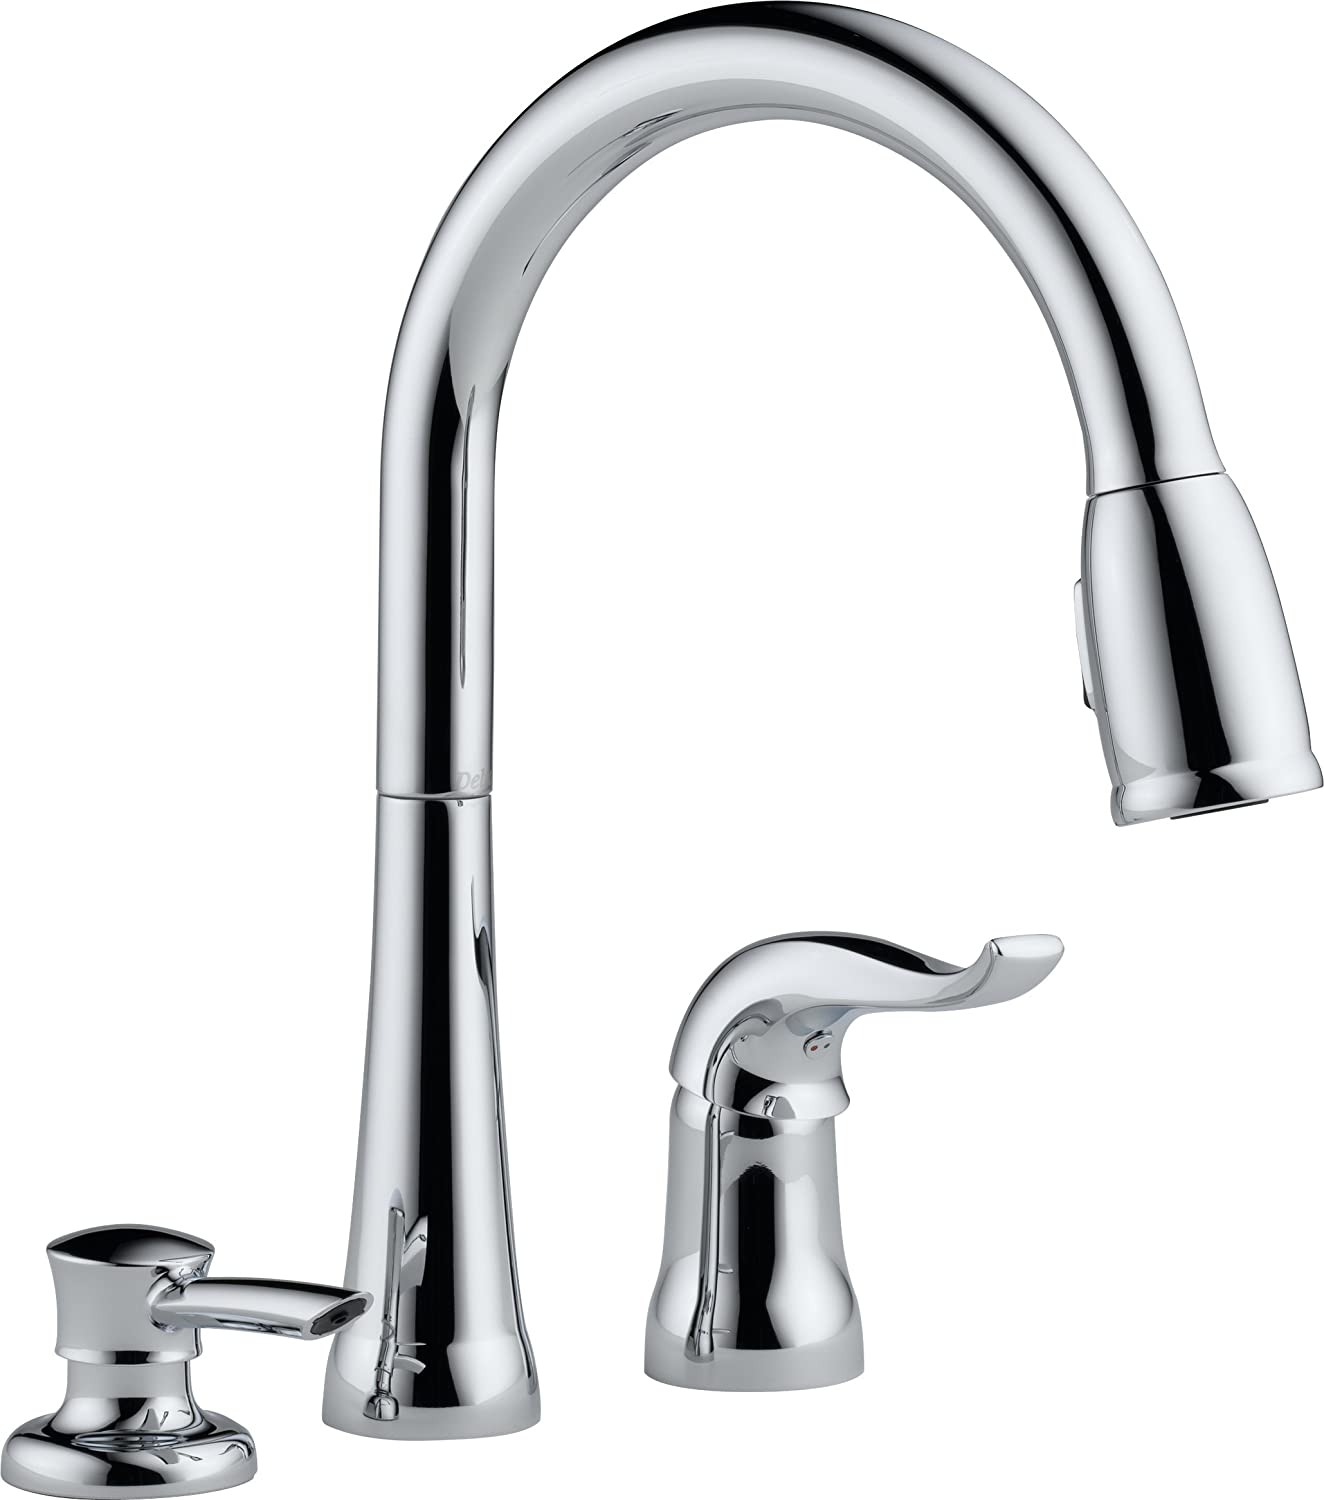 Delta 16970 SD DST Single Handle Pull Down Kitchen Faucet with Soap  Dispenser Chrome Touch On Sink Faucets Amazon com